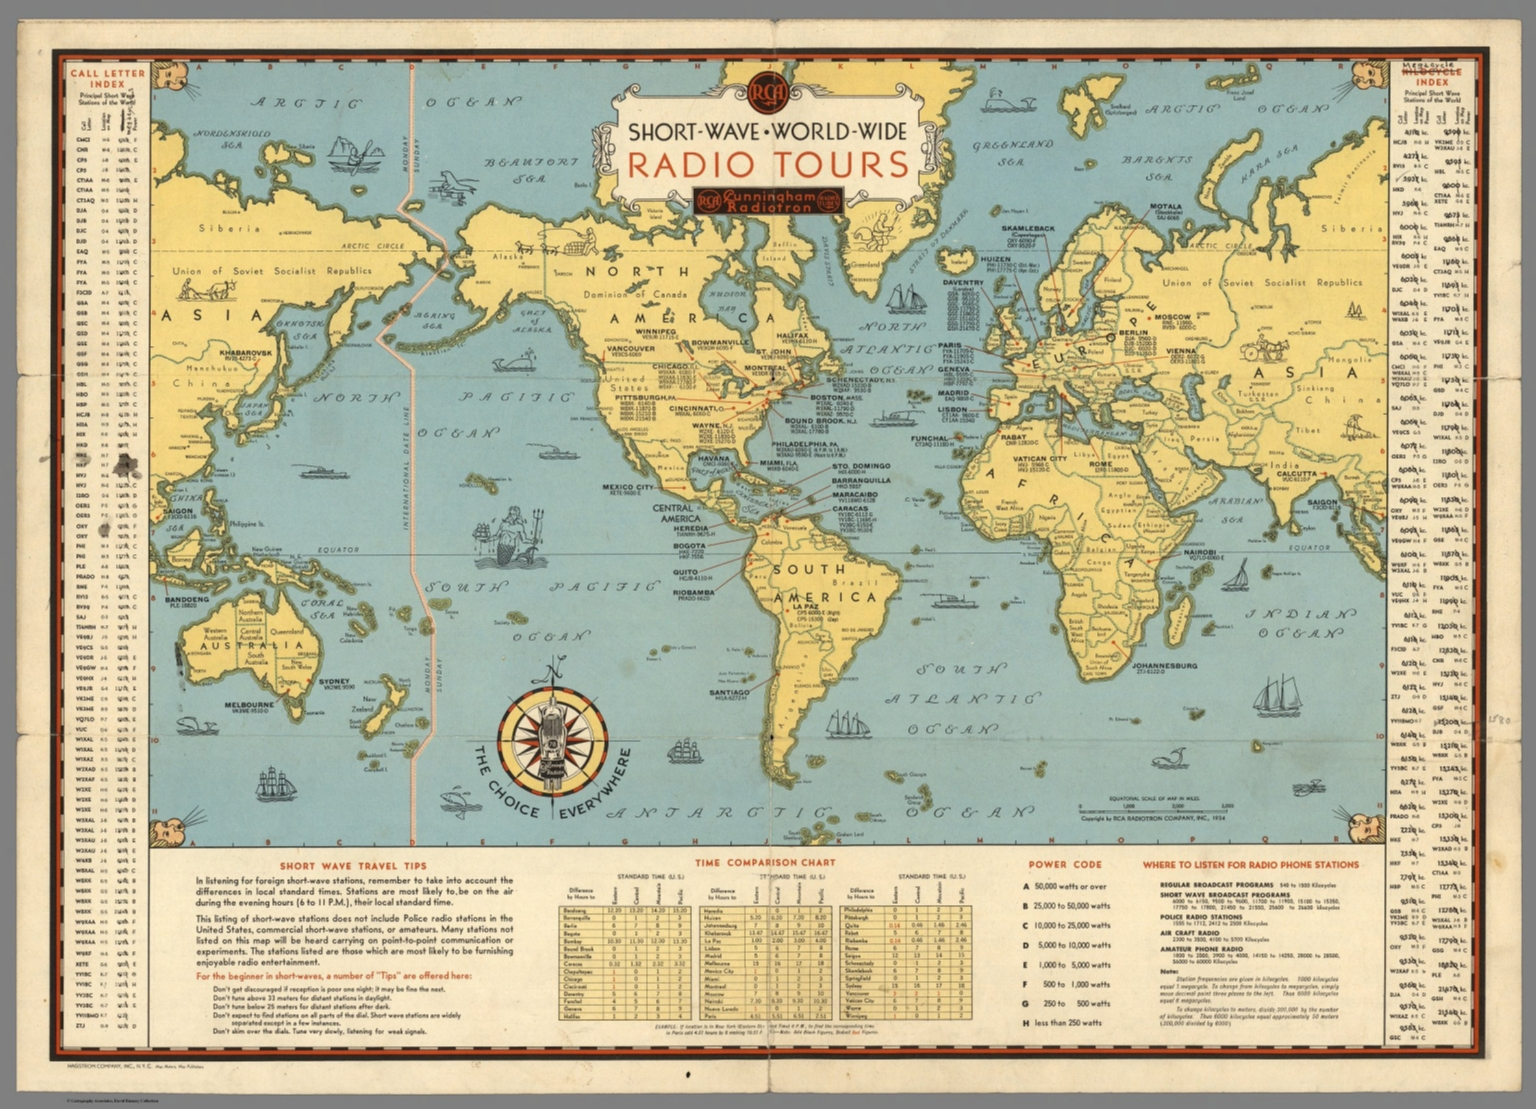 Short wave world wide radio tours david rumsey historical map short wave world wide radio tours gumiabroncs Images